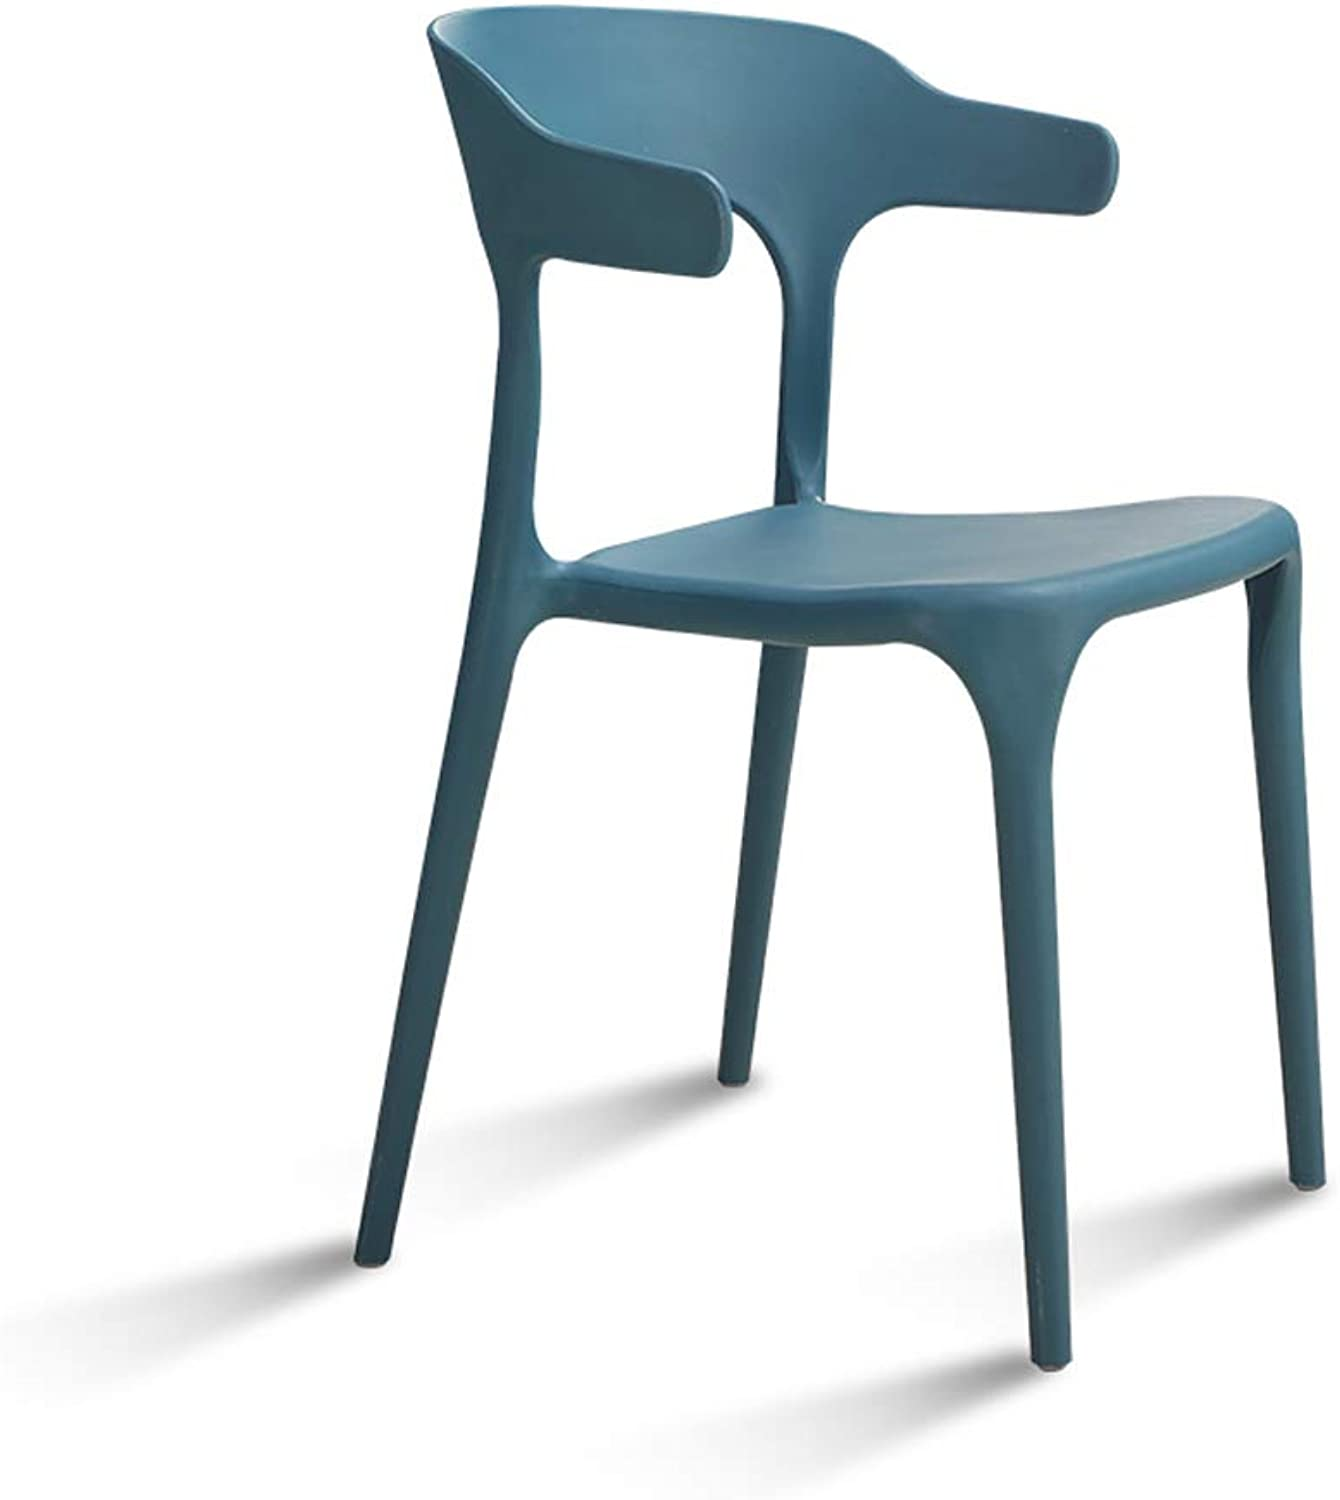 Plastic Dining Chair Living Room Home Bench, Simple Bar Stool Restaurant Table and Stool -L5148H46-77CM (color   bluee)